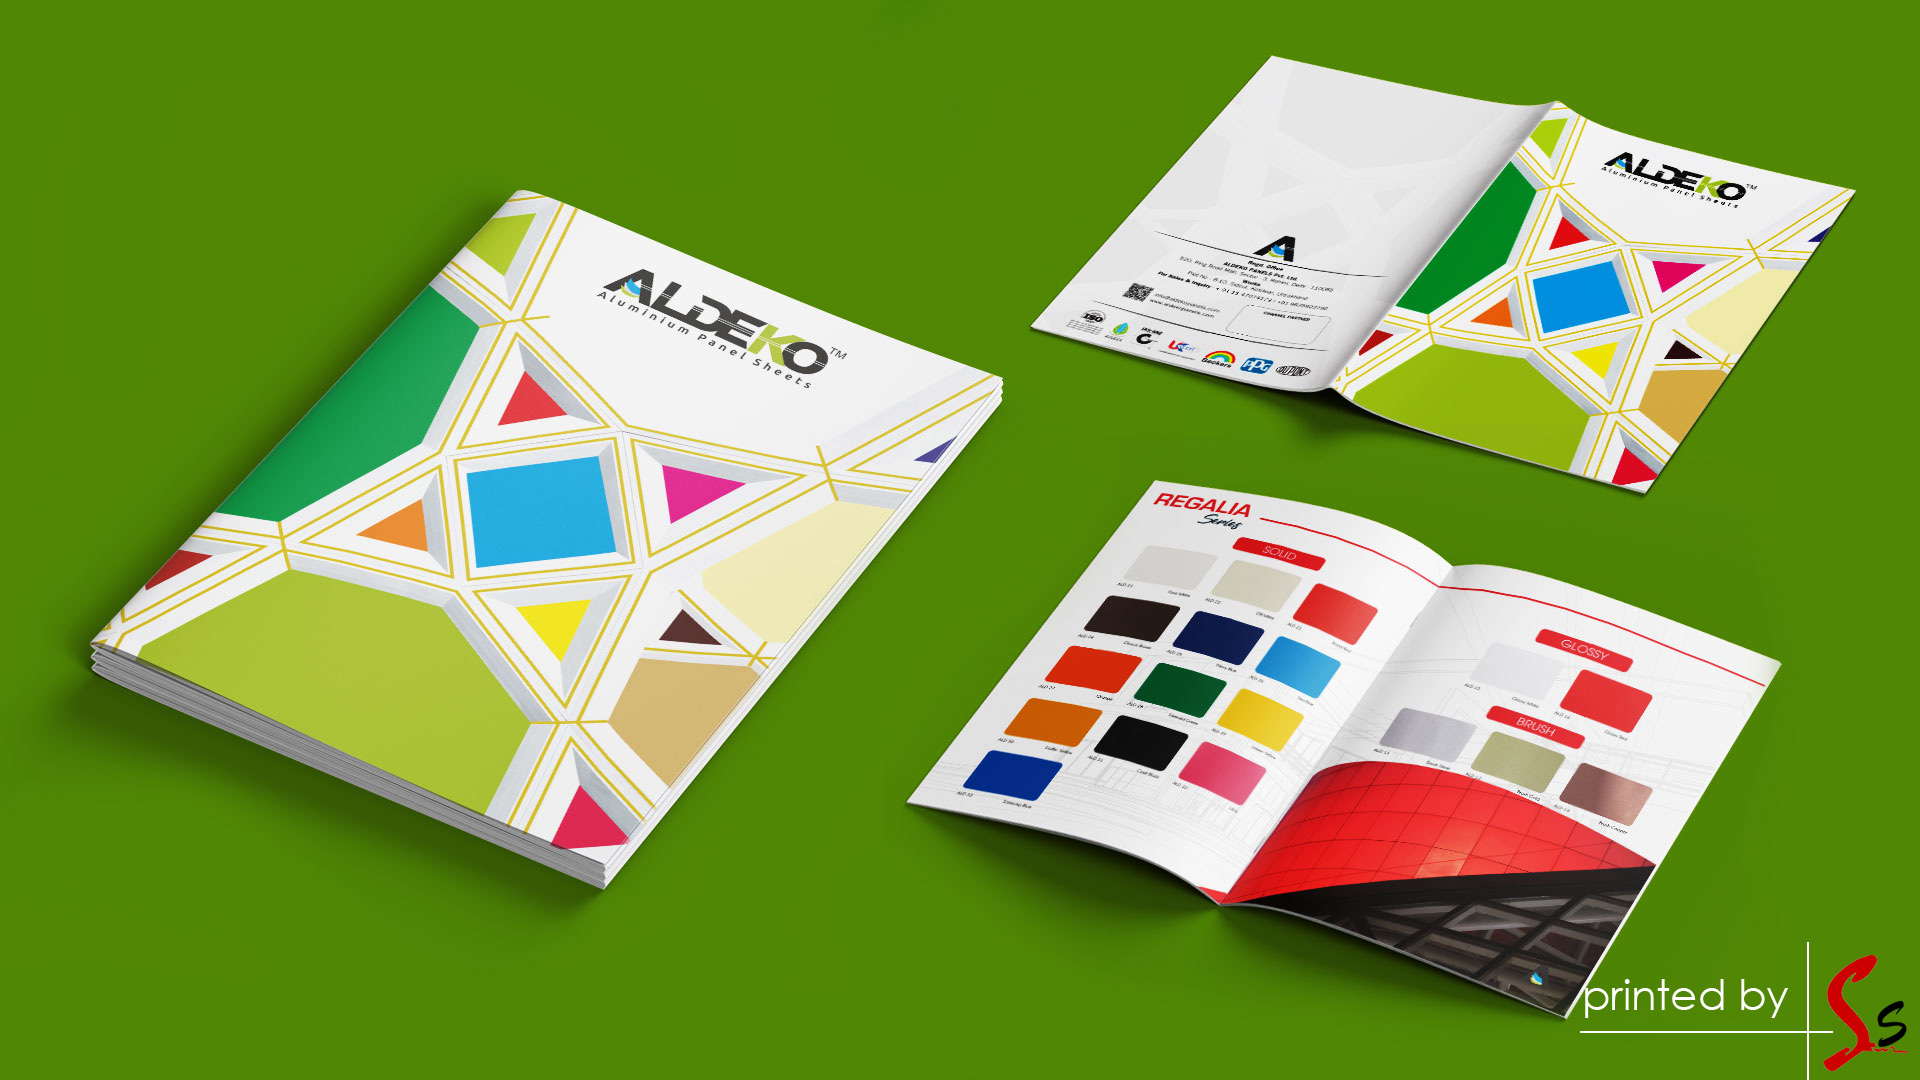 Aldeko Catalogue